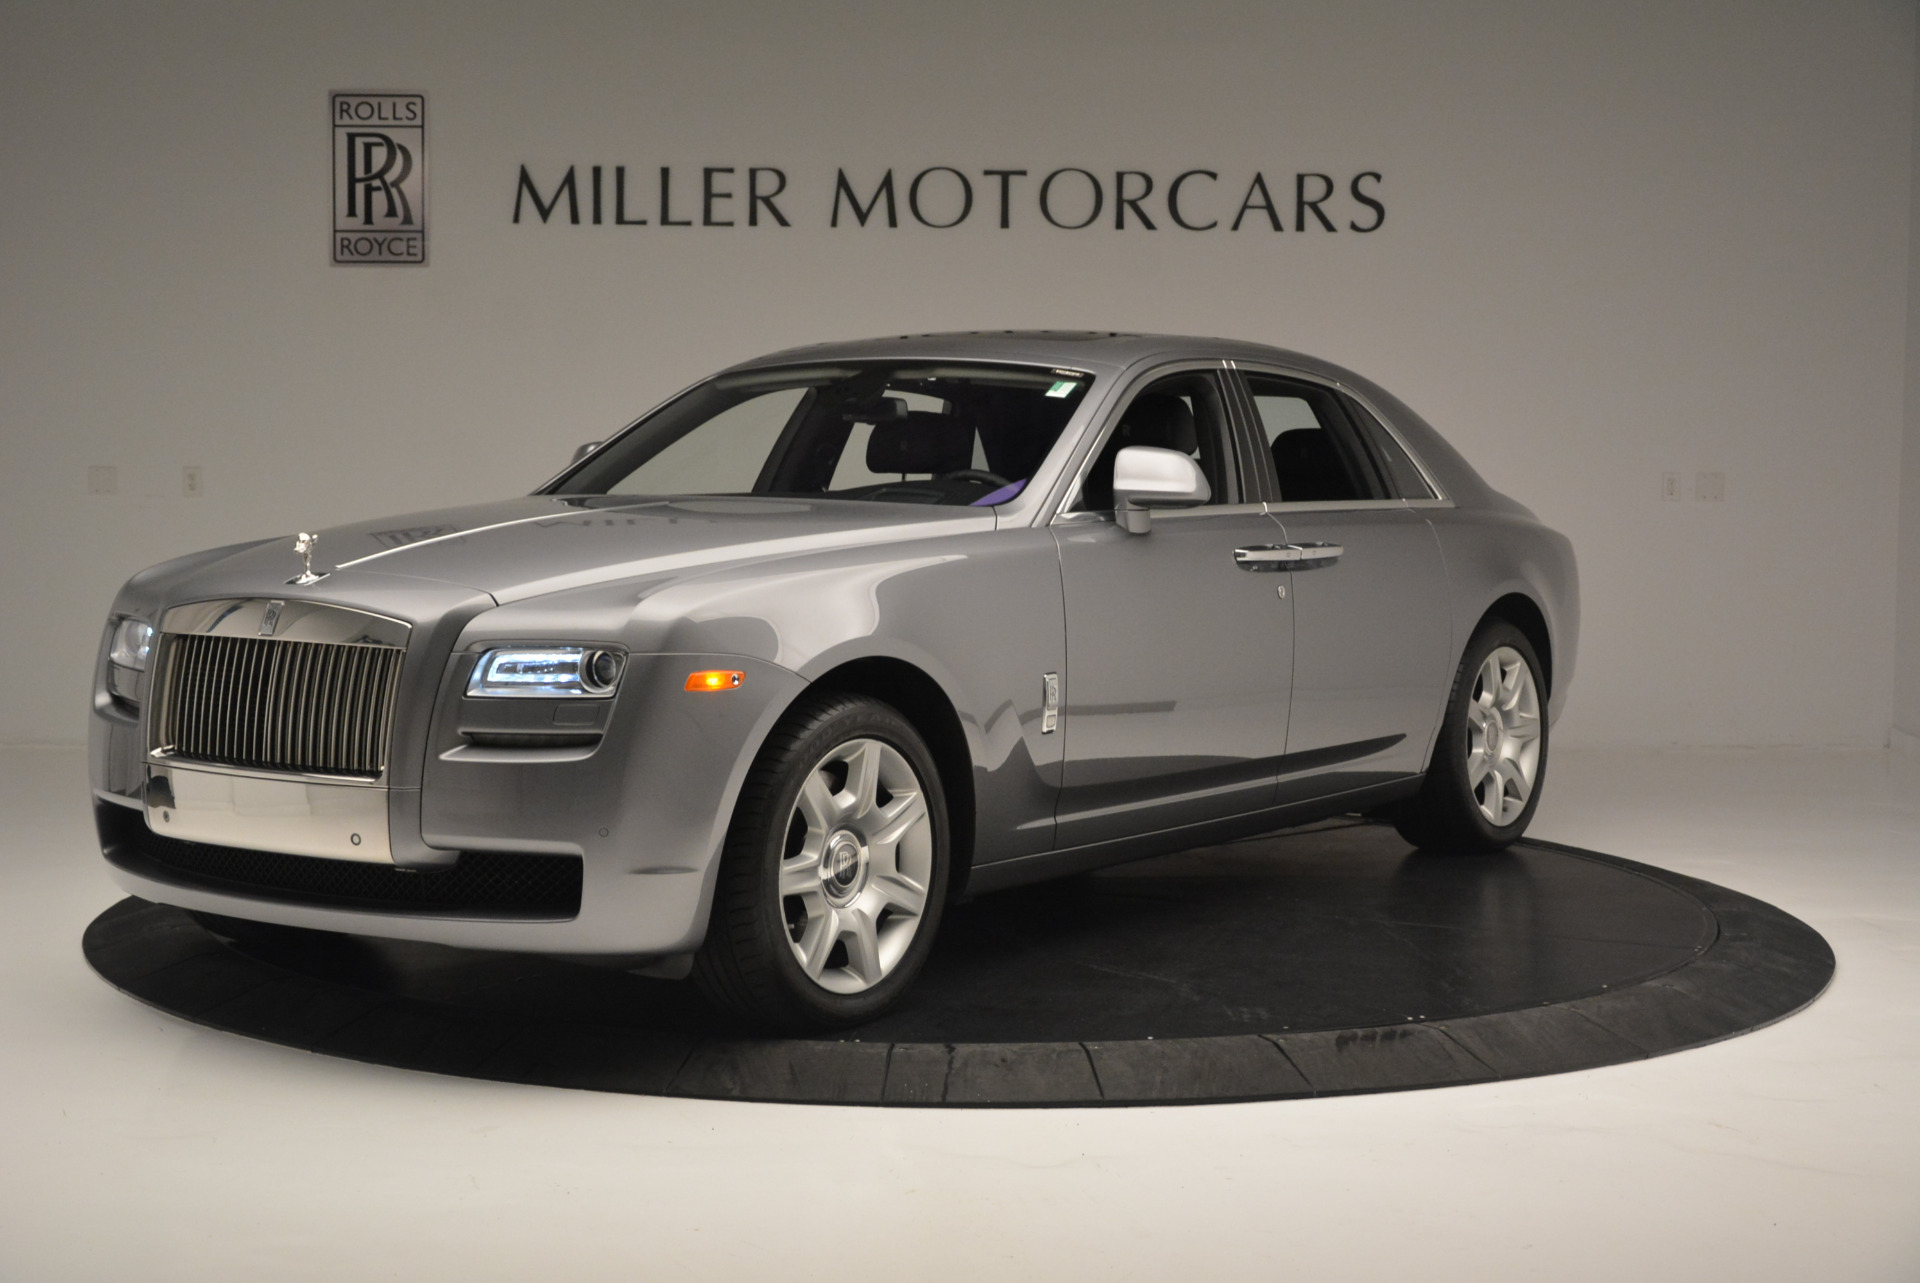 Used 2012 Rolls-Royce Ghost for sale Sold at Bugatti of Greenwich in Greenwich CT 06830 1